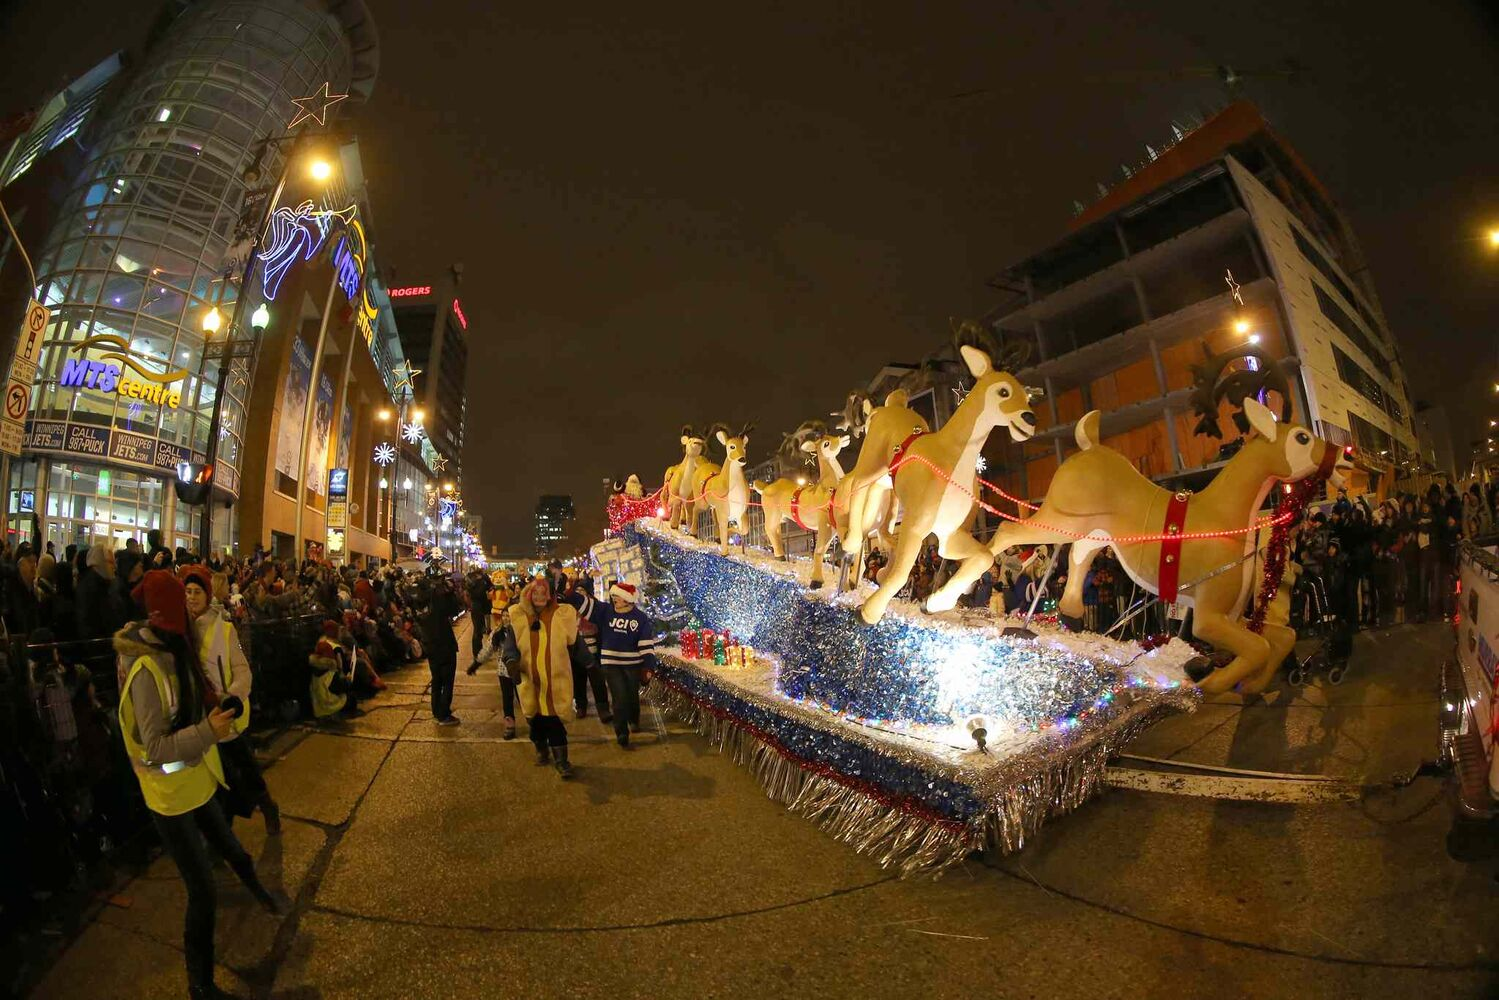 Santa Claus and his float move past the MTS Centre on Portage Ave. (TREVOR HAGAN / WINNIPEG FREE PRESS)